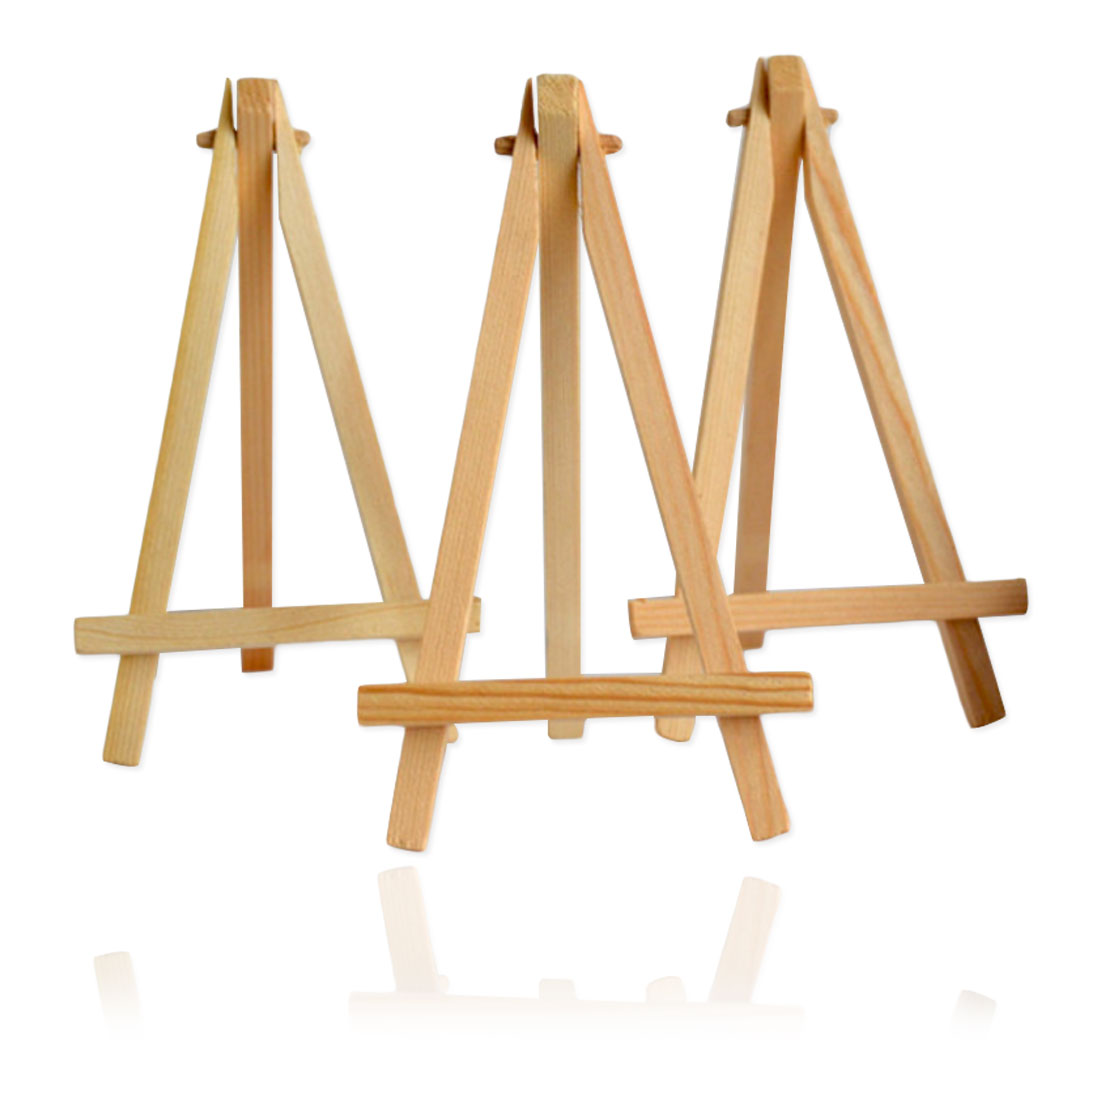 Painting Display Holder Party Art Deco  Mini Artist Wooden Easel Wedding Table Card Stand Craft Painting Easel